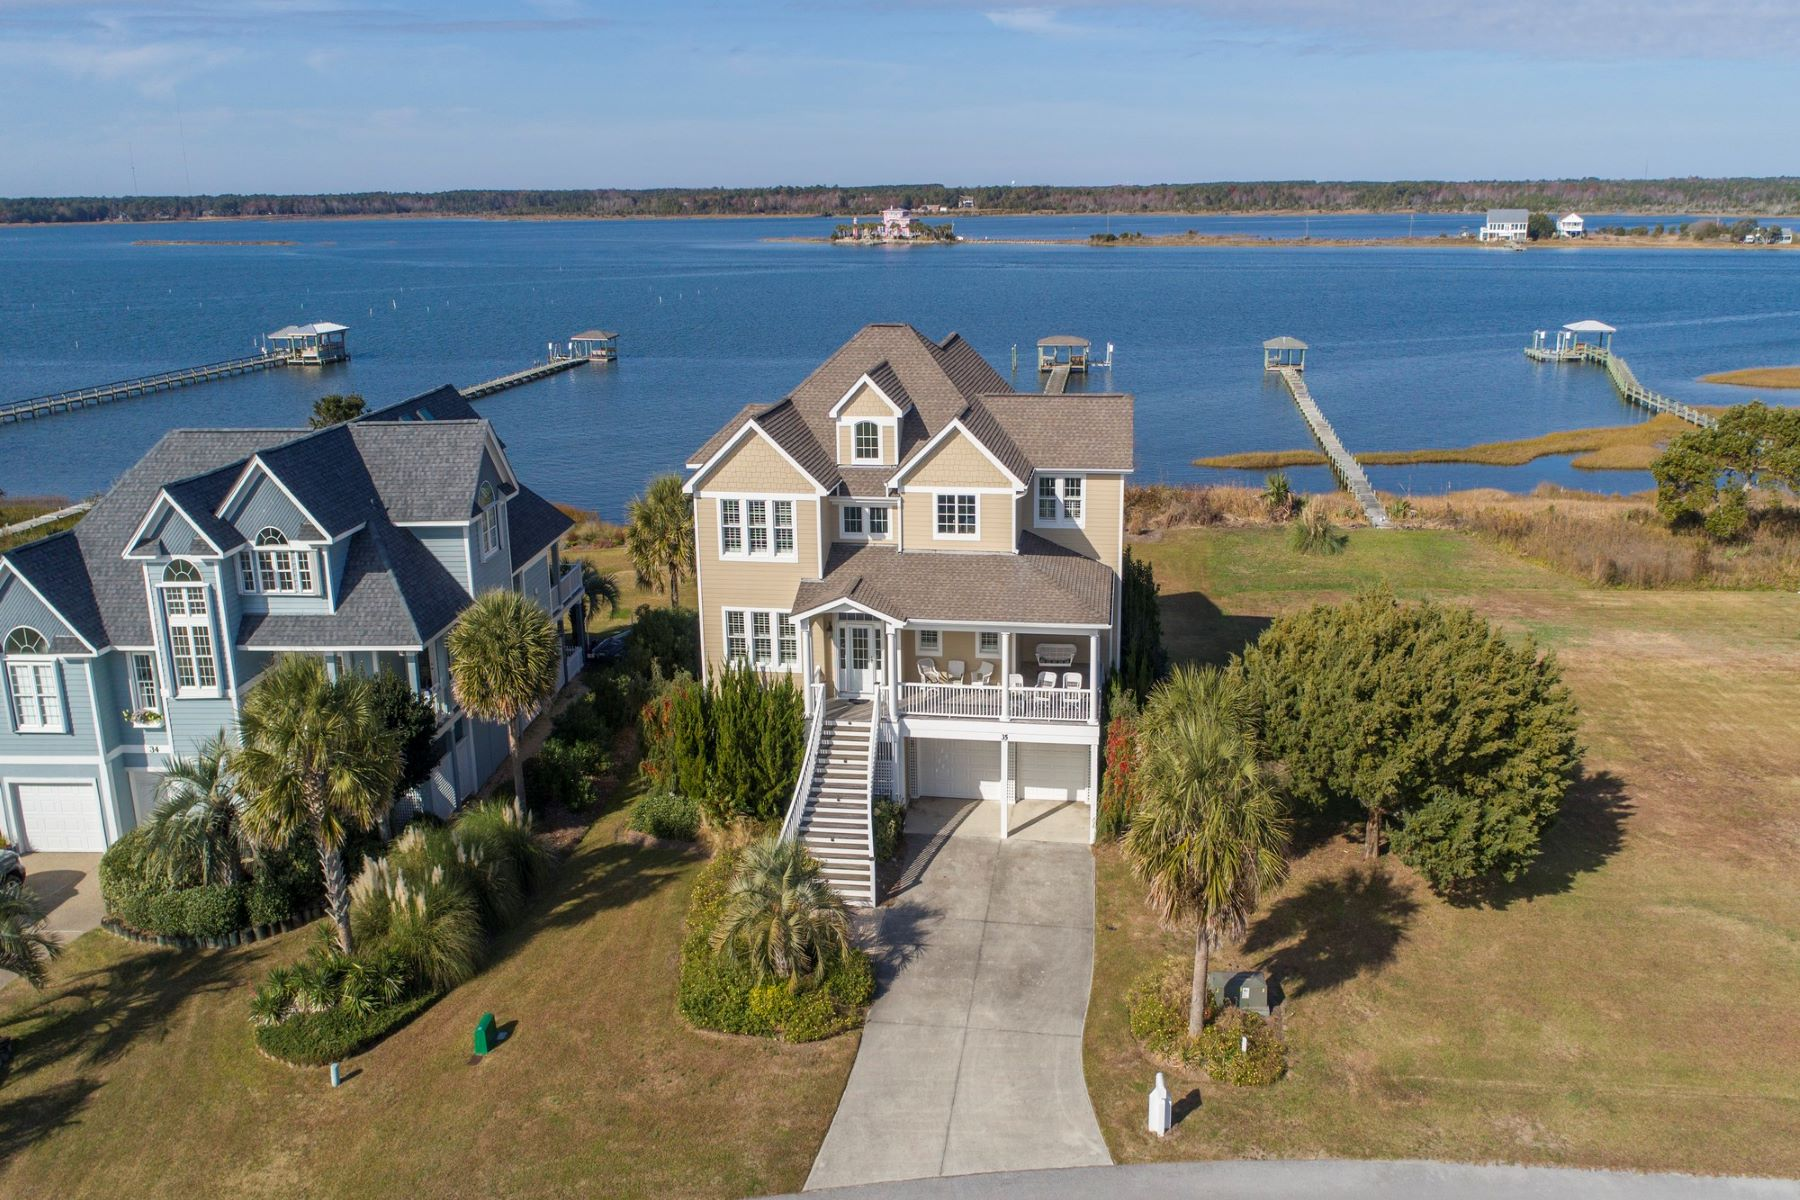 独户住宅 为 销售 在 Stunning Waterfront Home With Expansive Views 35 Sailview Drive, N Topsail Beach, 北卡罗来纳州, 28460 美国